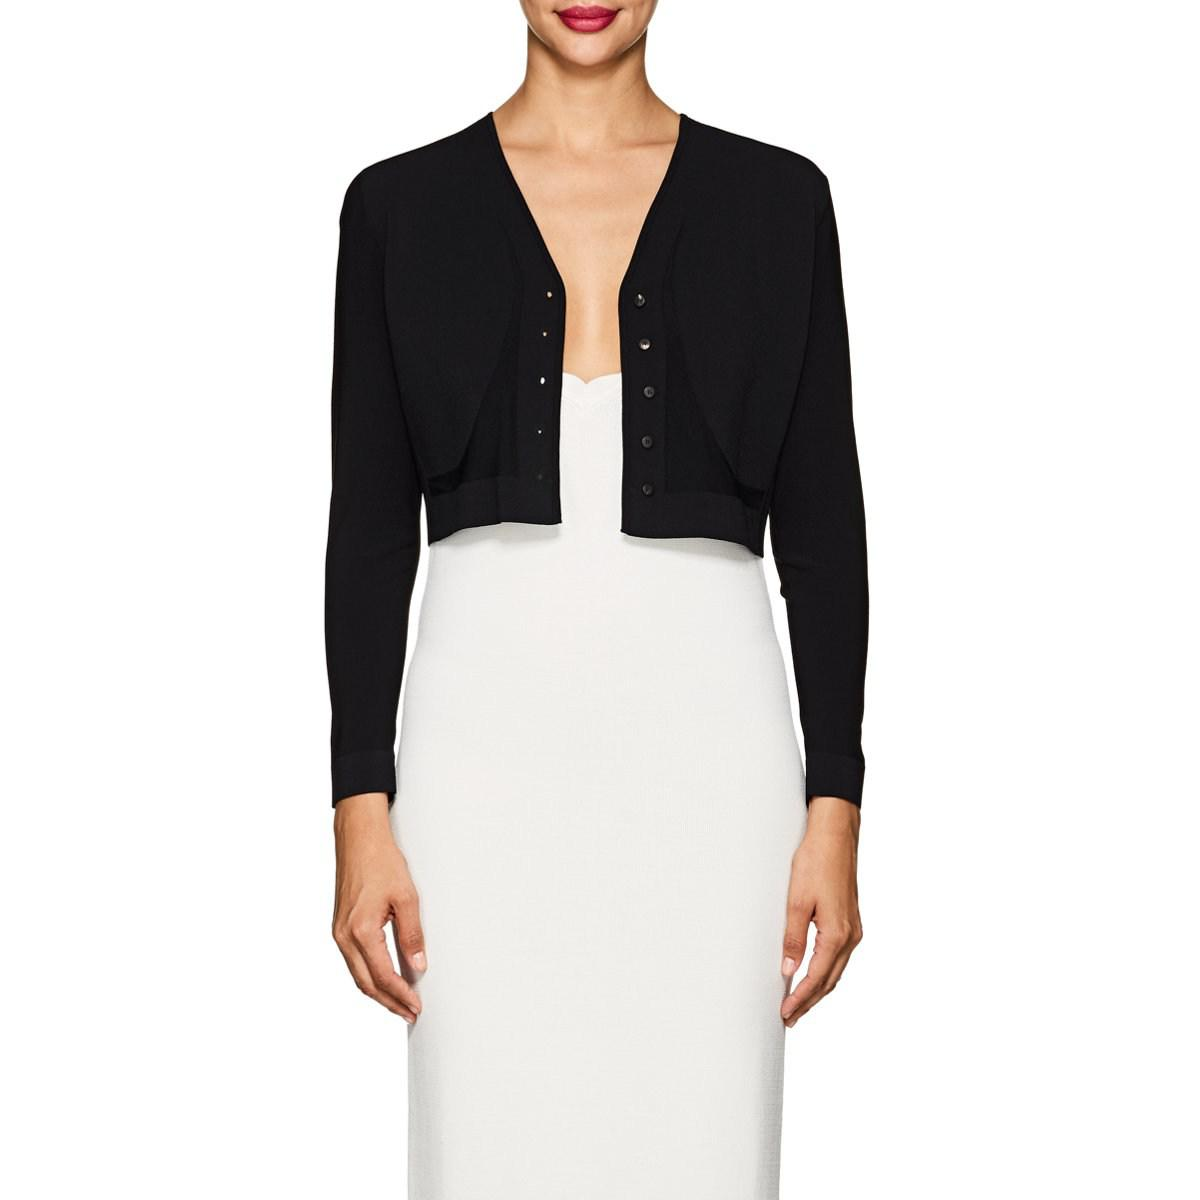 56f2a7651c Lyst - Narciso Rodriguez Compact Knit Crop Cardigan in Black